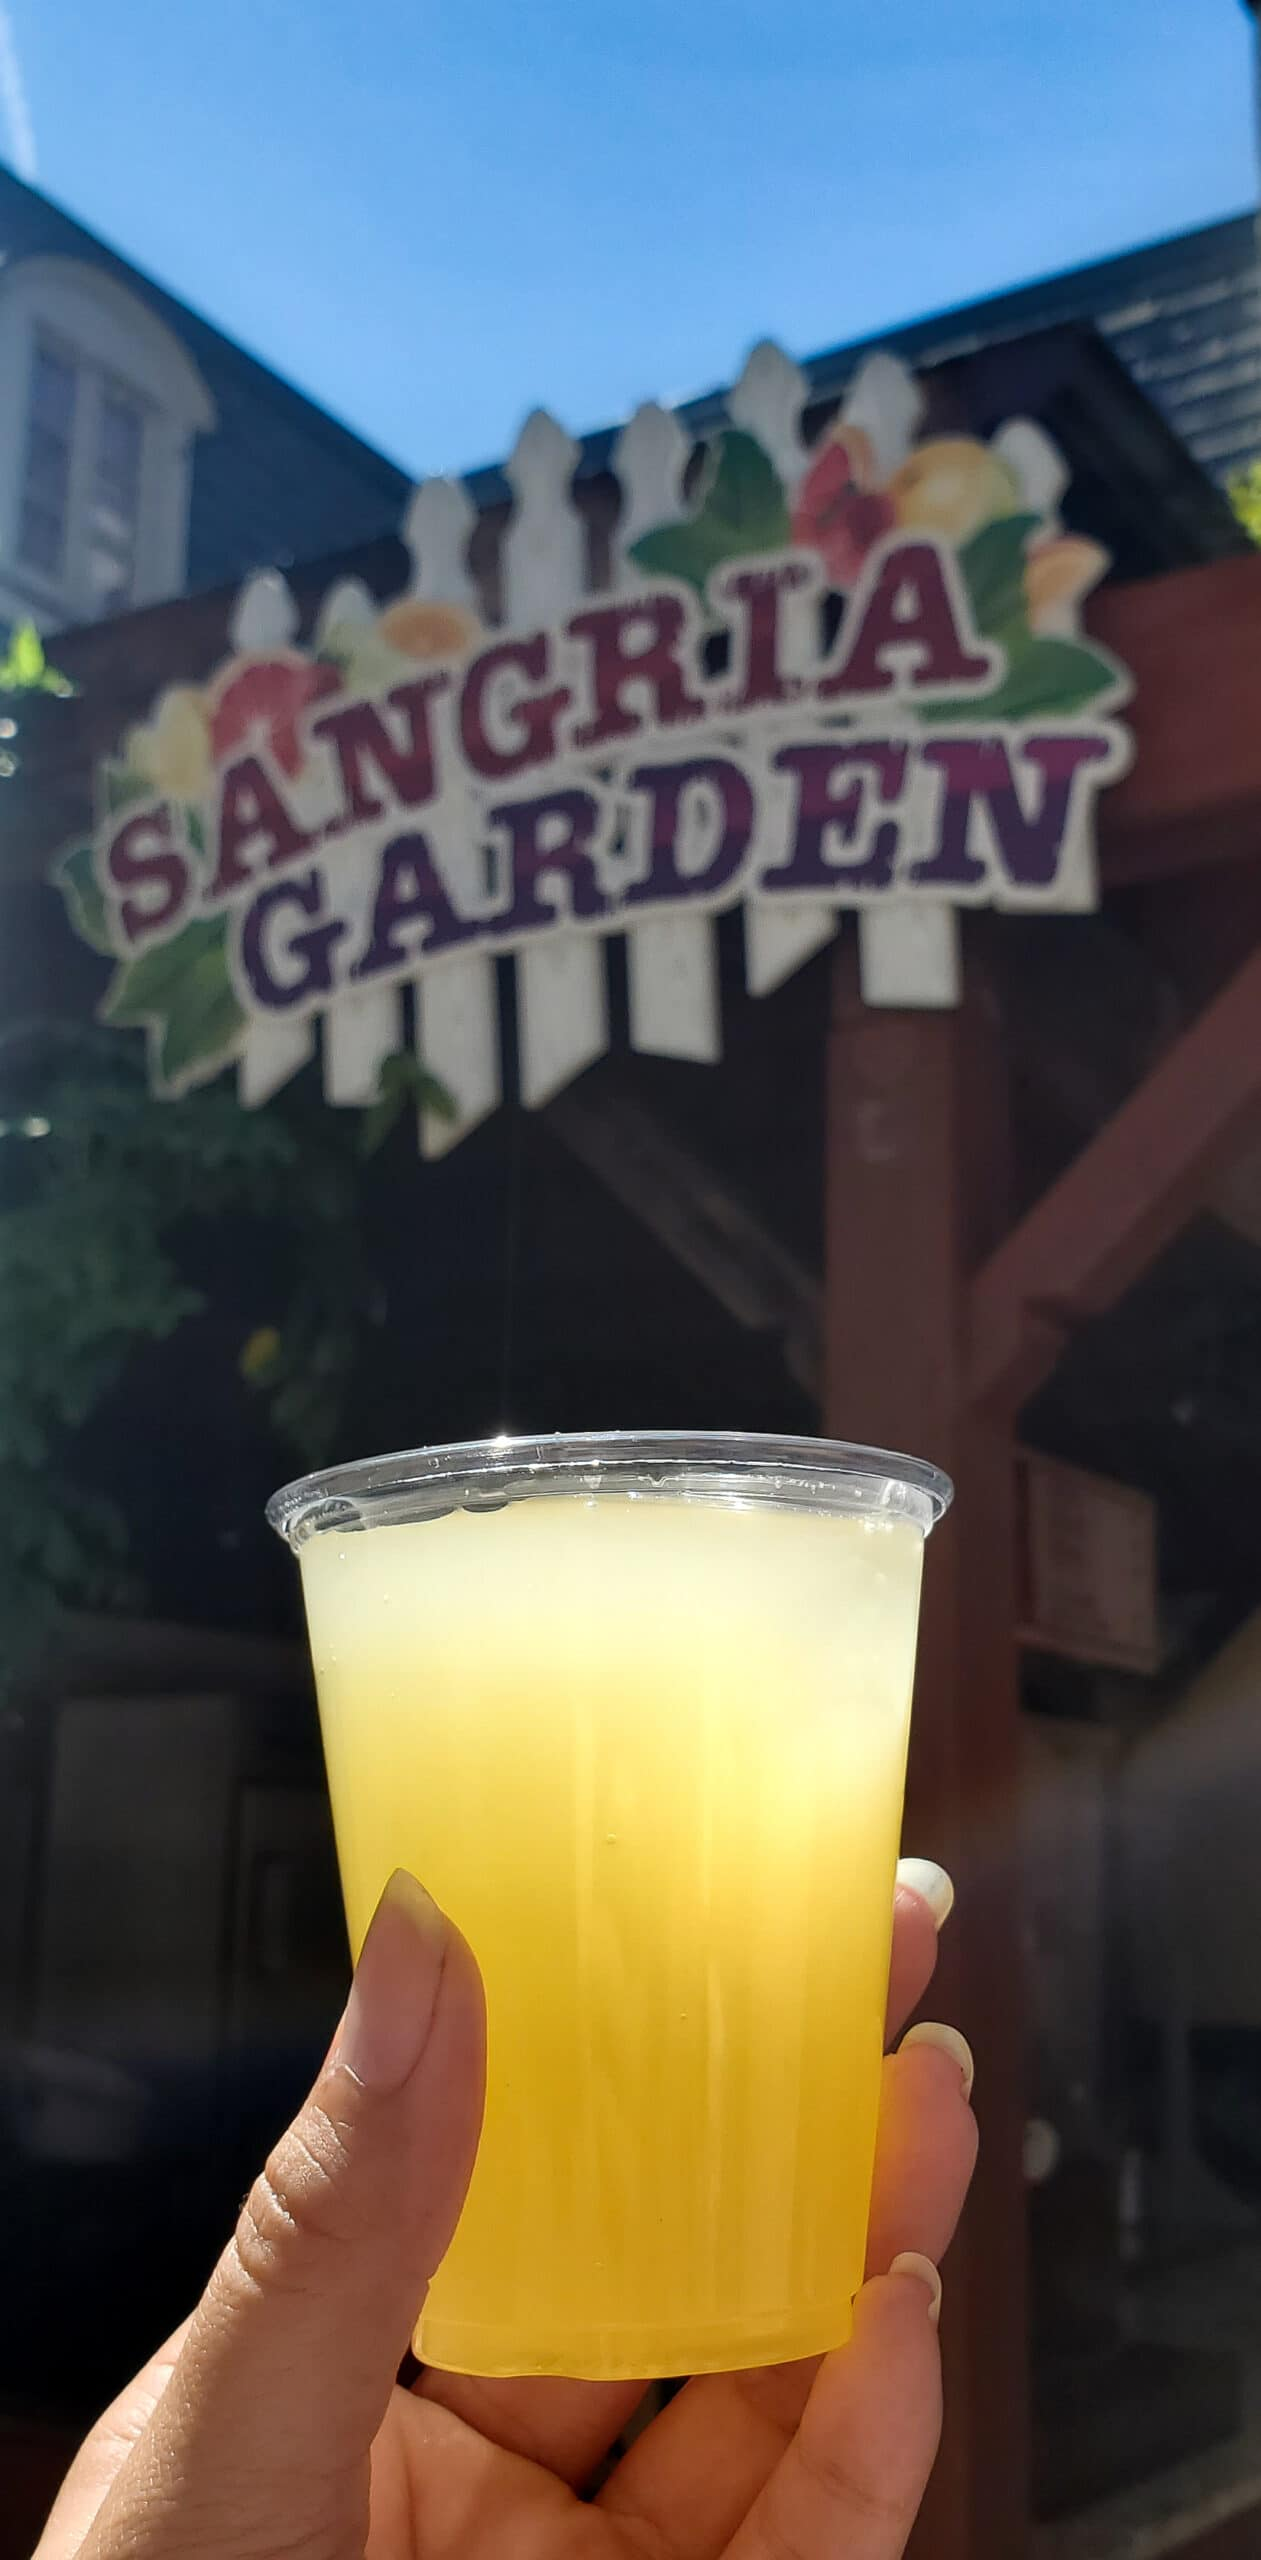 Taste of Busch Gardens White Sangria. Sip, sample, and soar at this limited-capacity during the Taste of Busch Gardens special event in Williamsburg, VA. Select areas of the park will be open so there is plenty of room to safely enjoy specialty food and drinks as you stroll through our 6 charming villages.